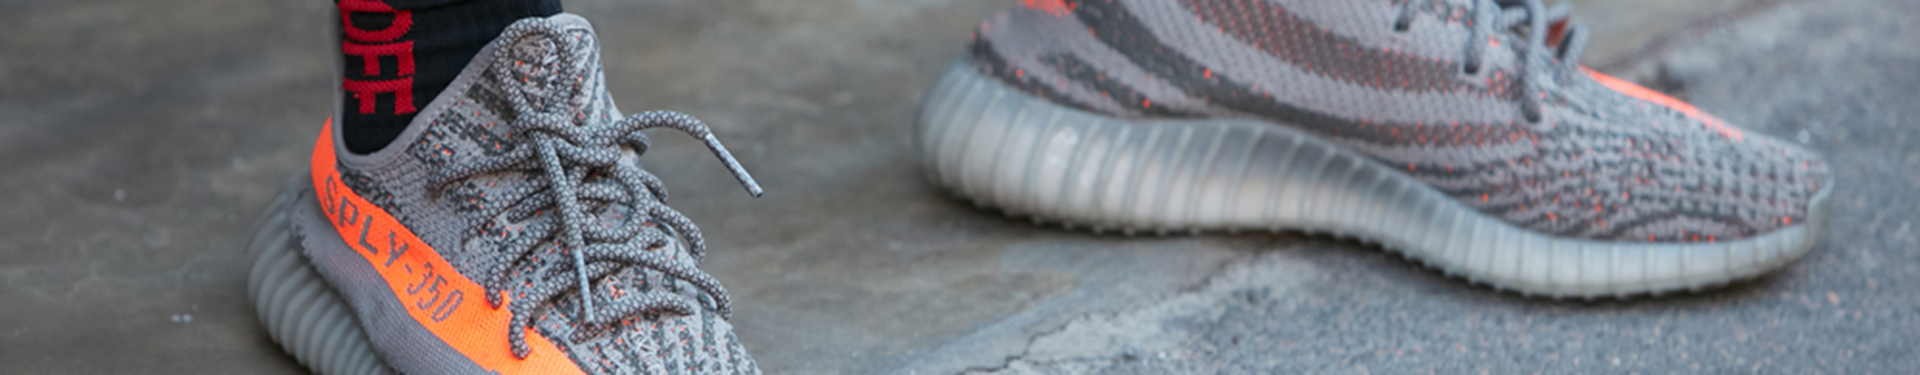 Order Yeezy Boost from UK to US